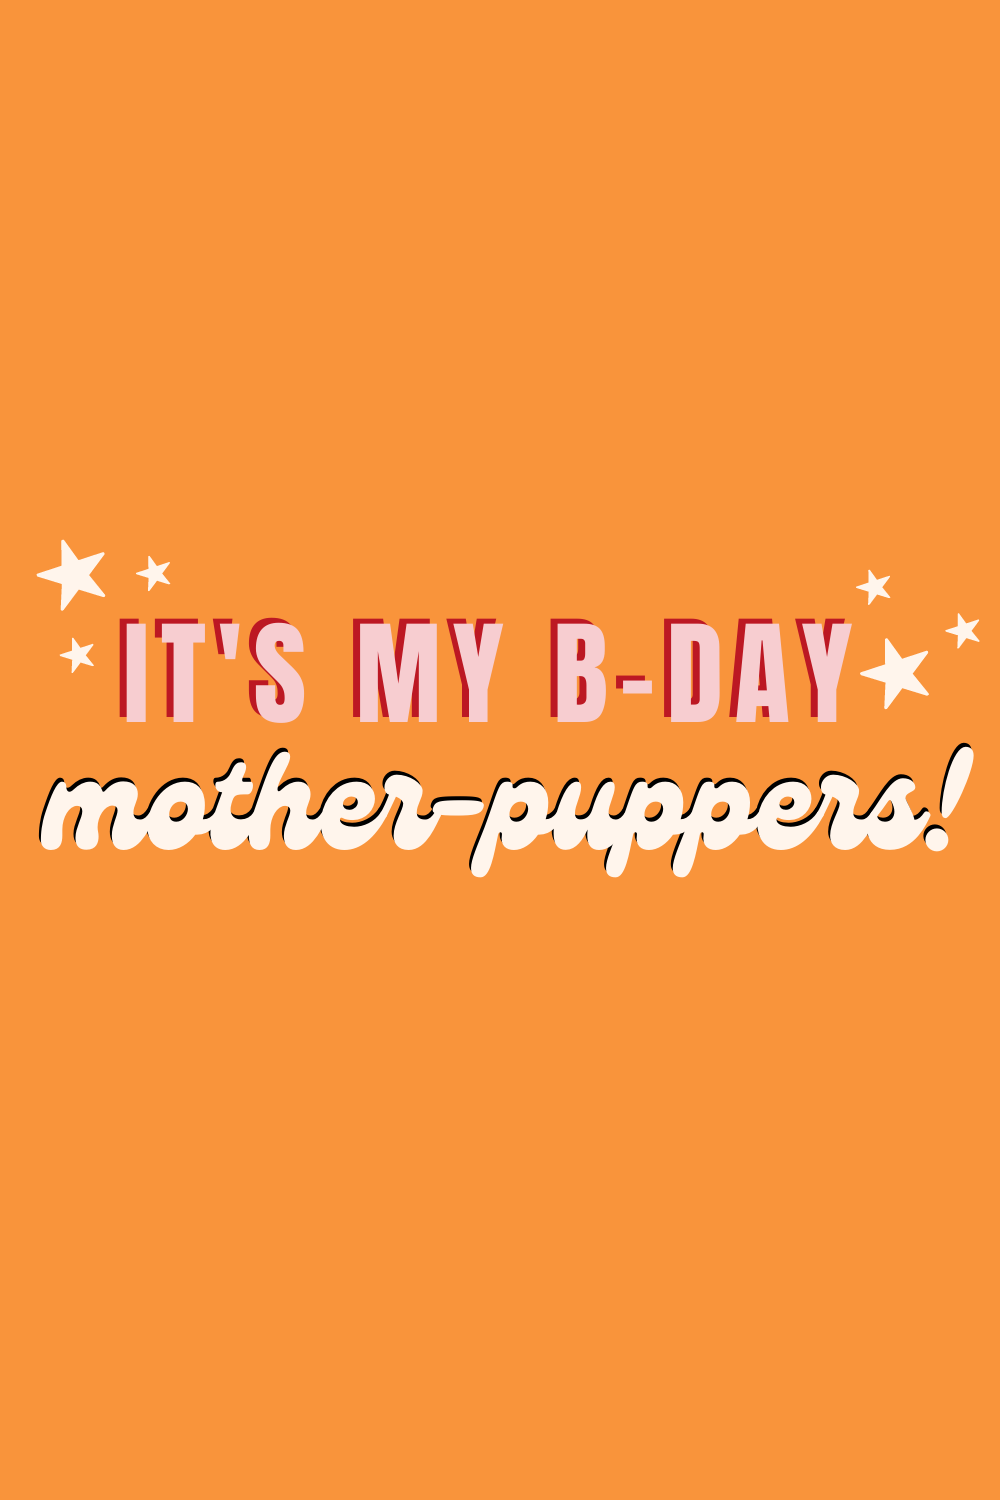 Funny Dog Birthday Quotes To make you laugh